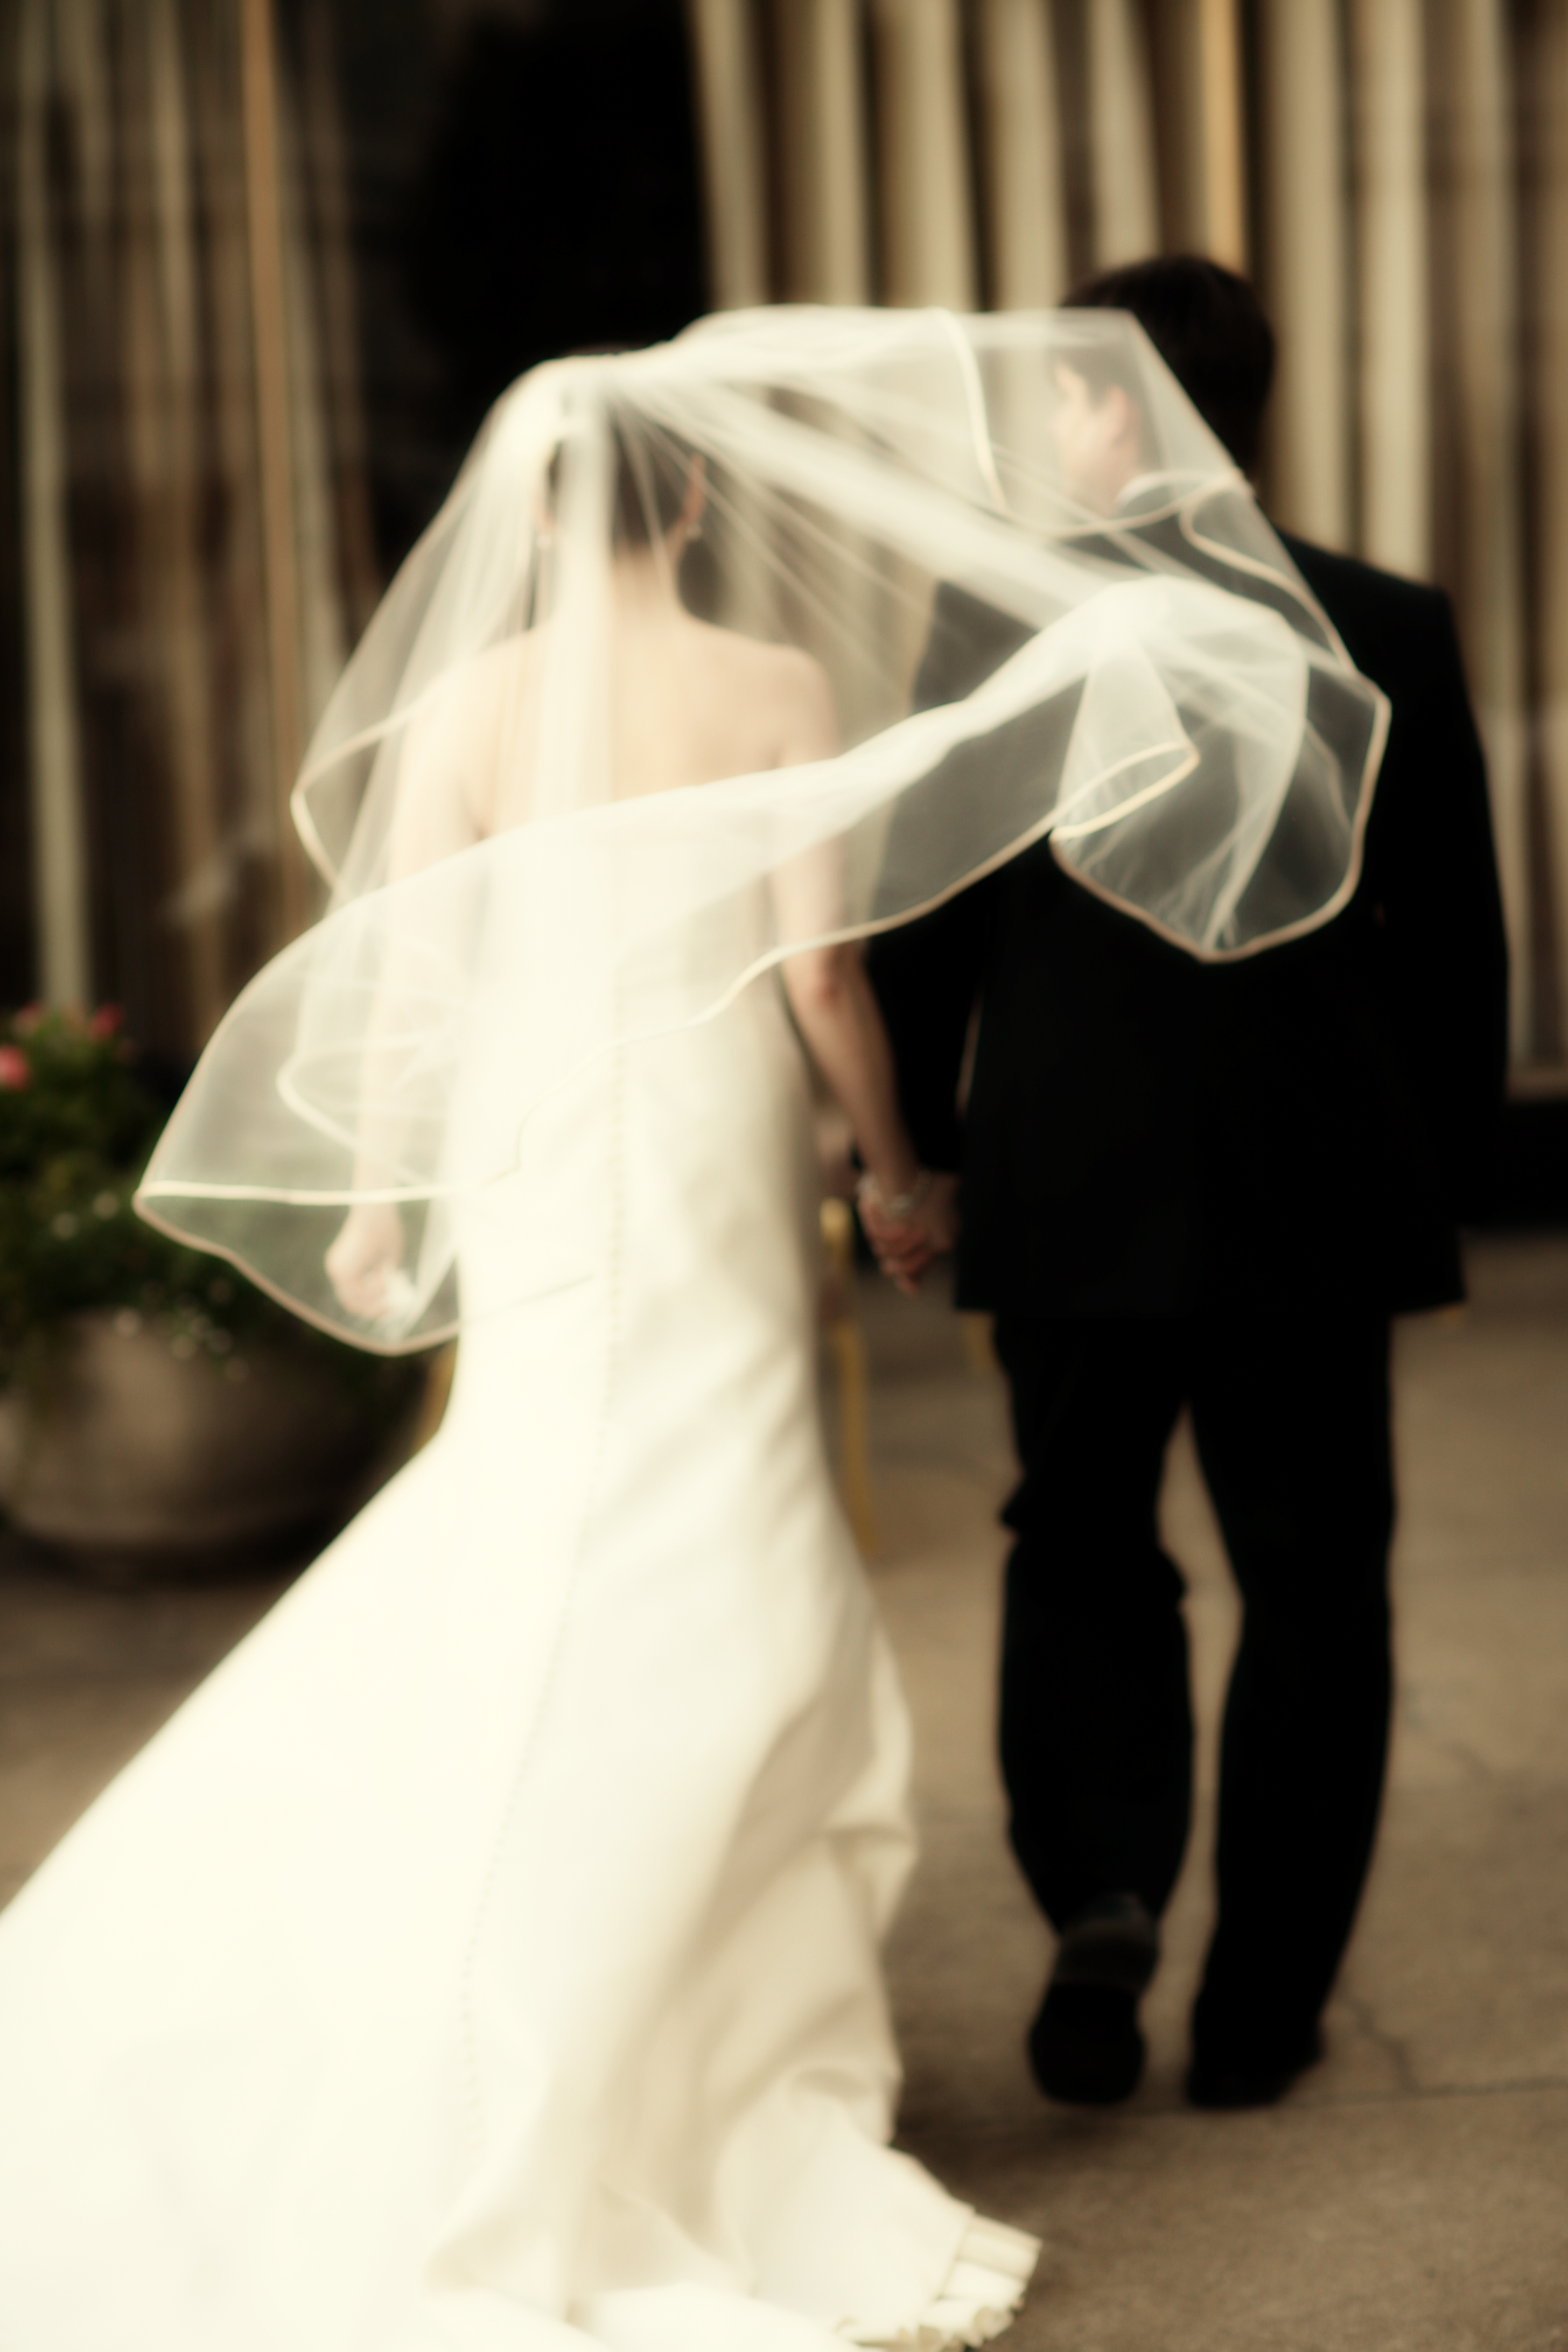 Veils, Photography, Fashion, Veil, San francisco, Downey street events, Annie mcelwain